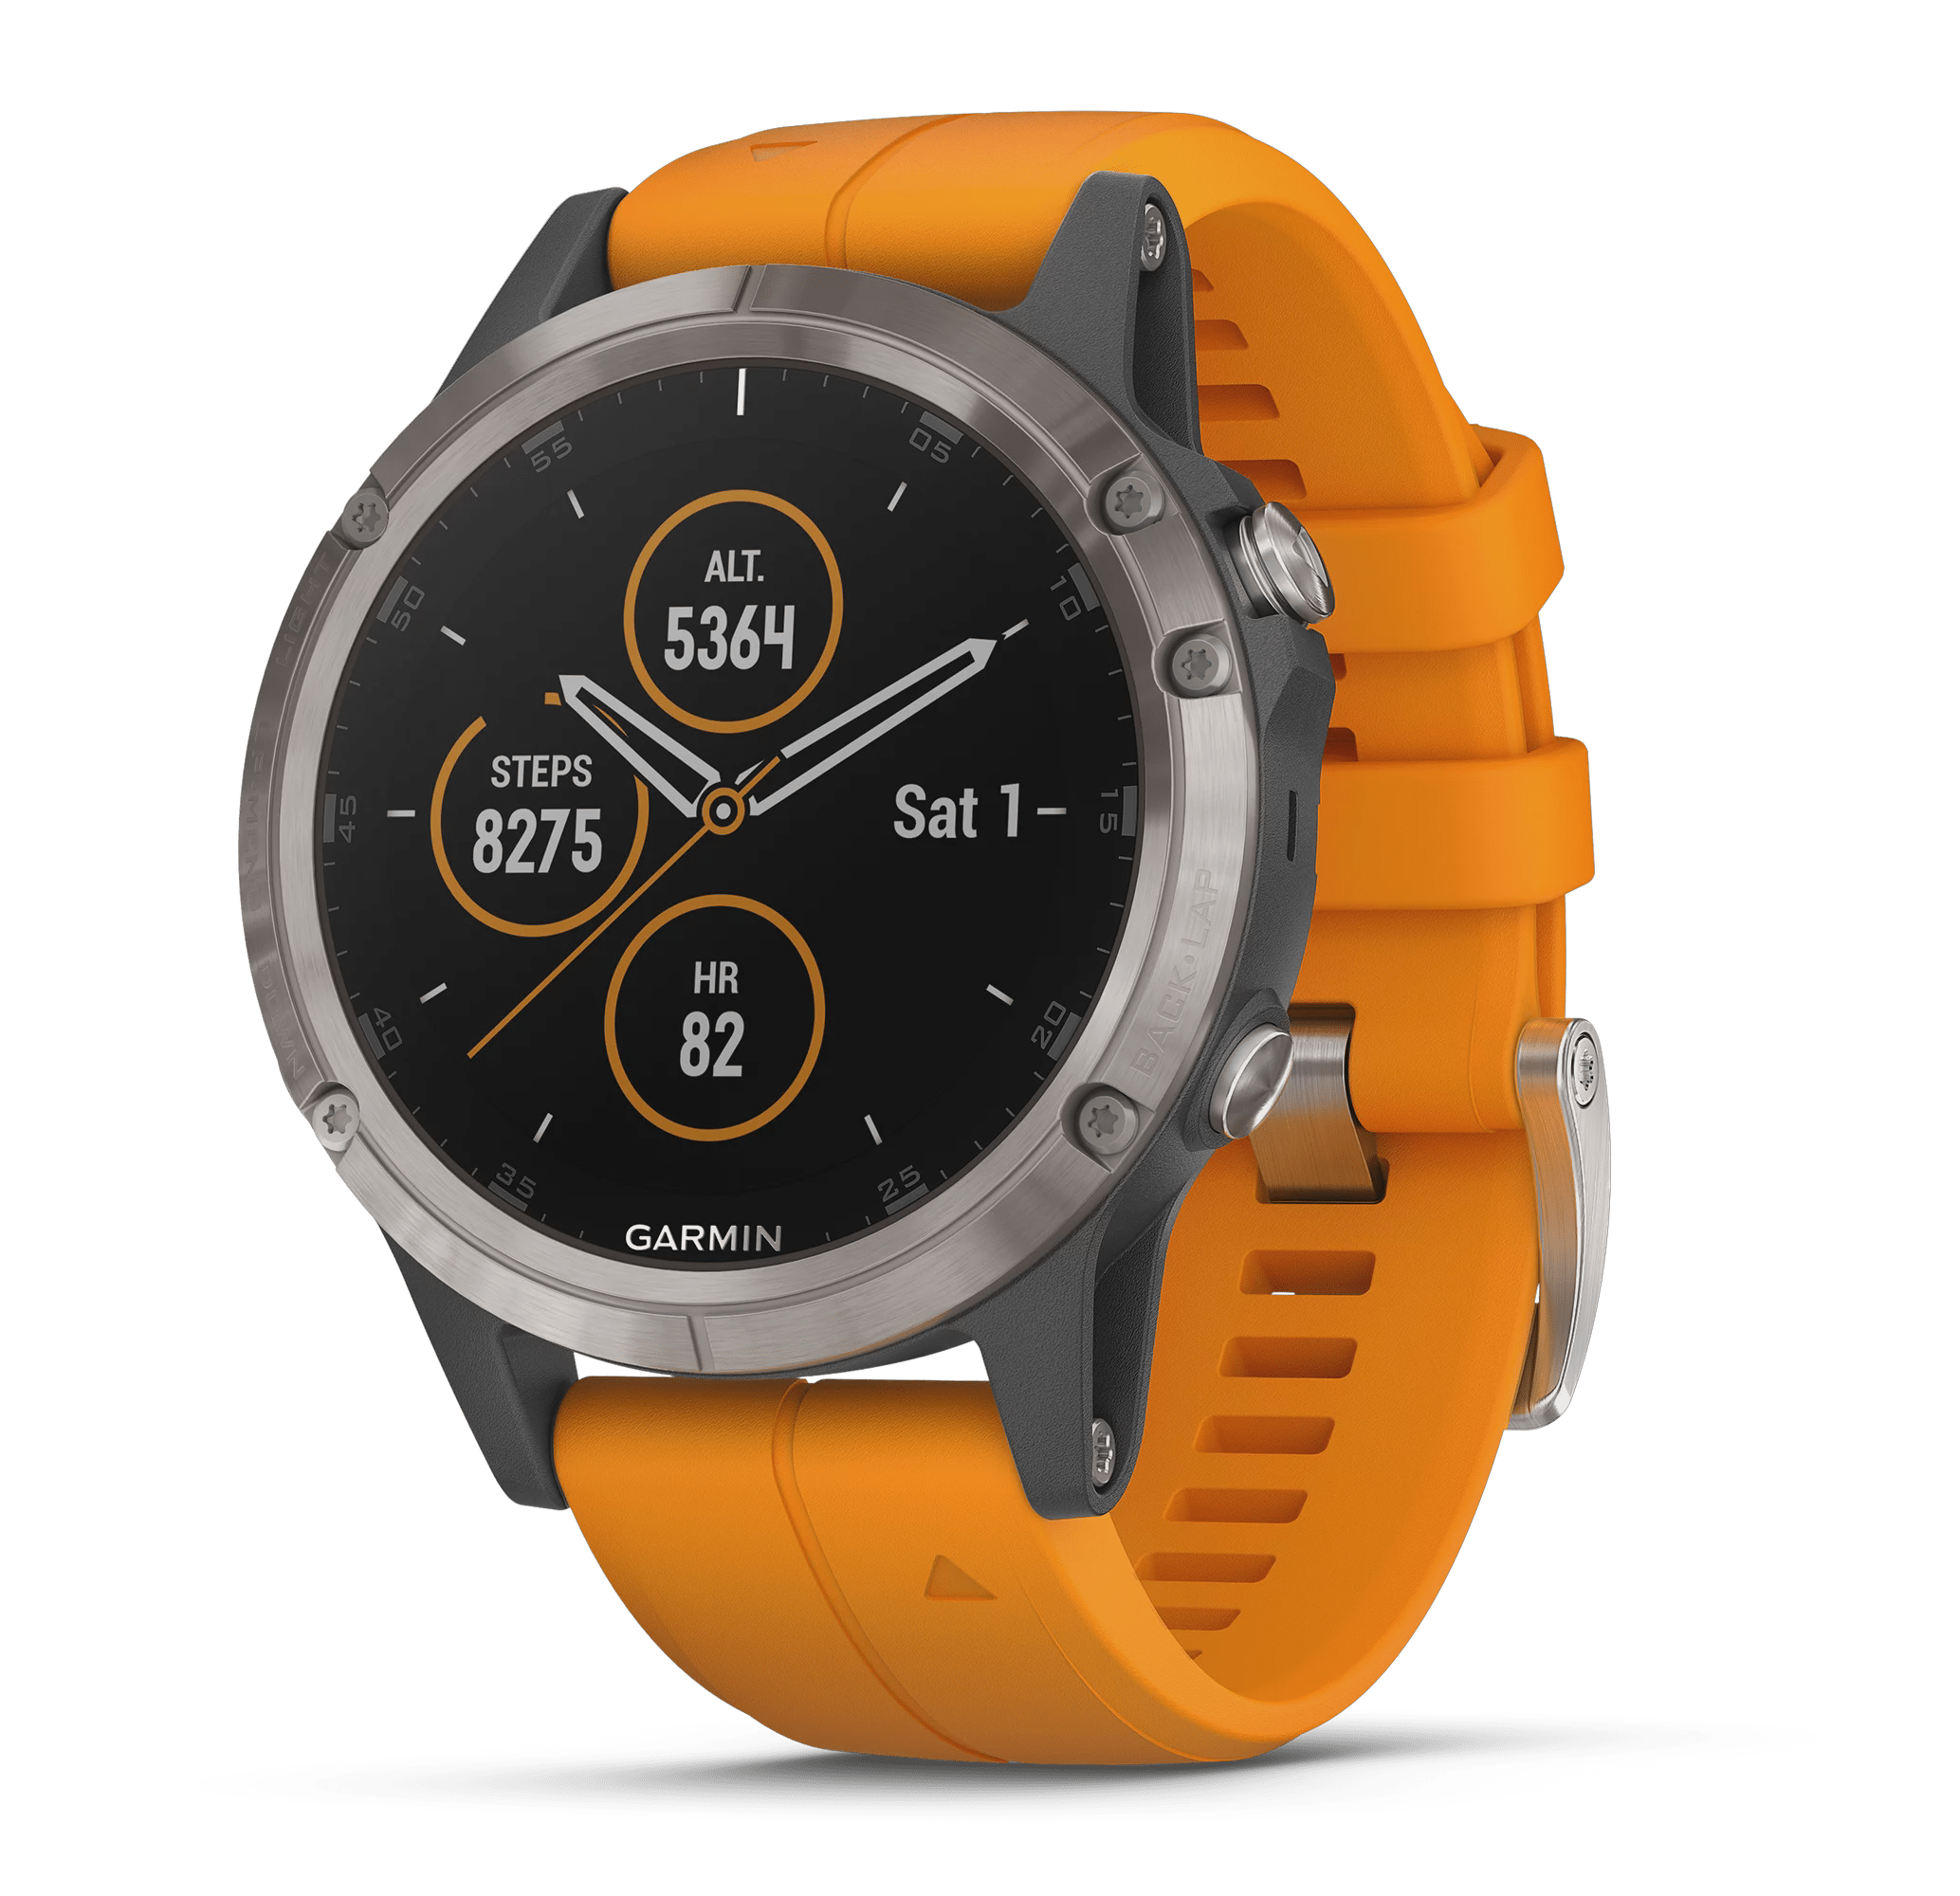 Garmin Fenix 5 Plus Sapphire, Titanium with solar flare orange band by Garmin